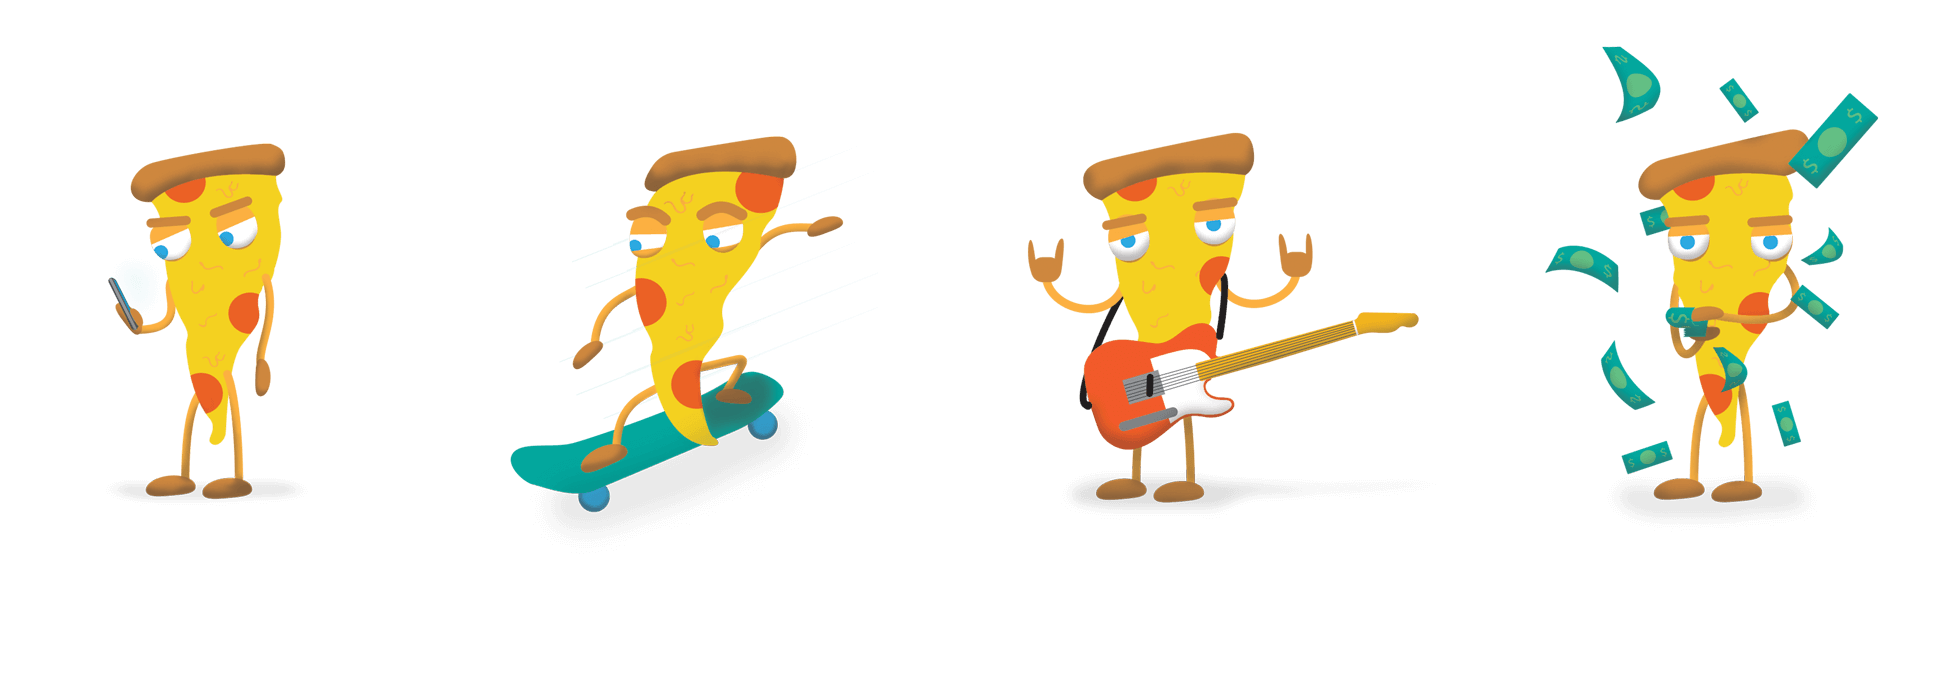 Exercising clipart motion. Pizza stickers alex apostolides